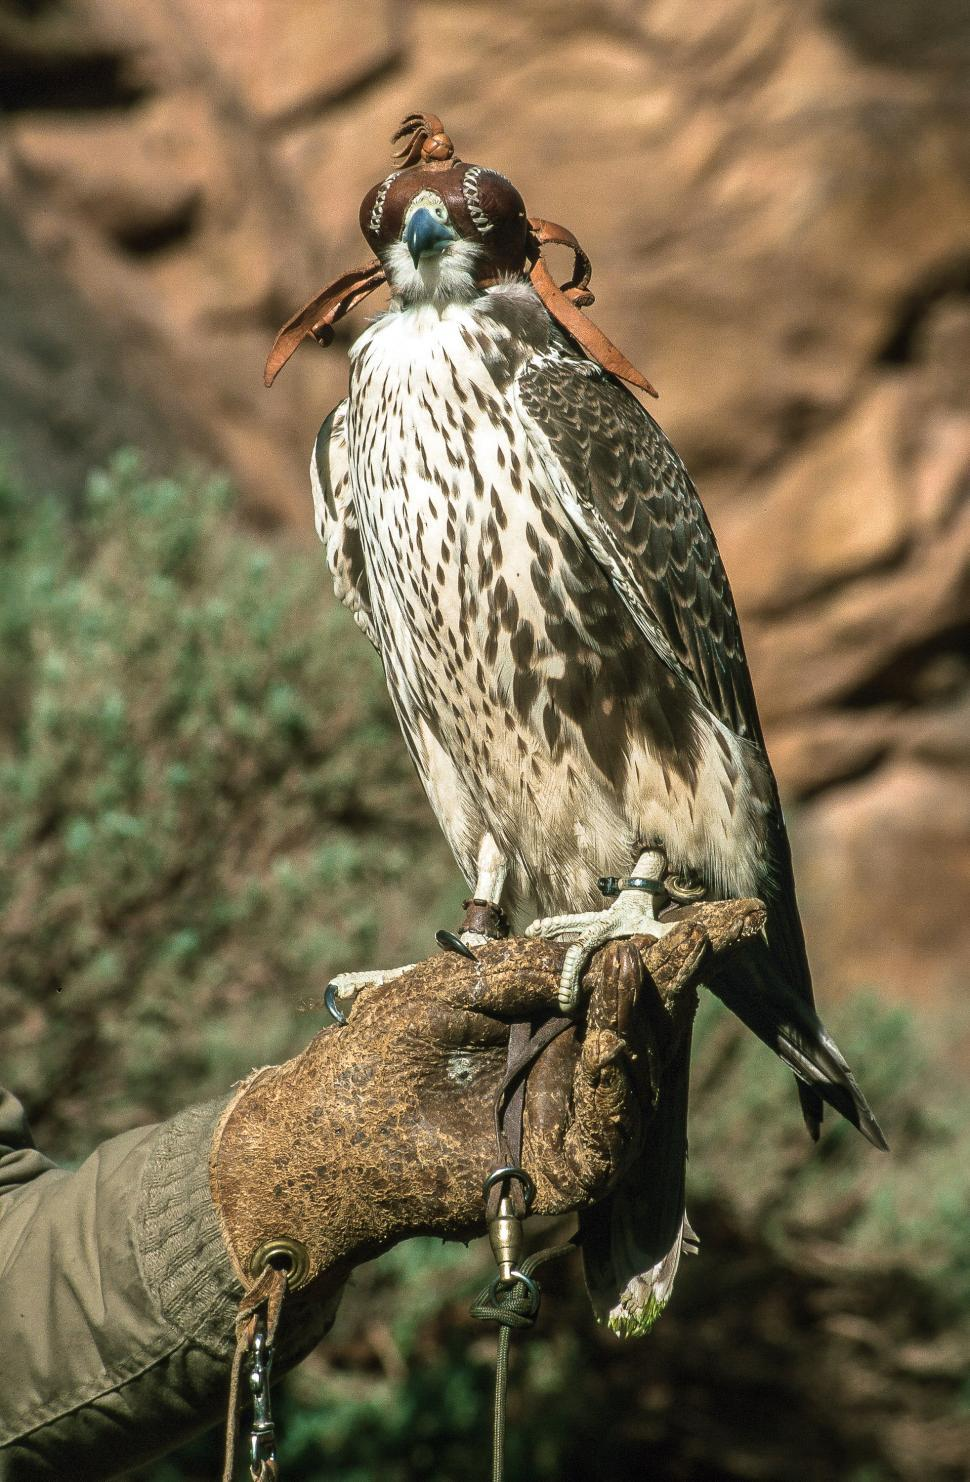 Download Free Stock Photo of Prairie falcon hooded